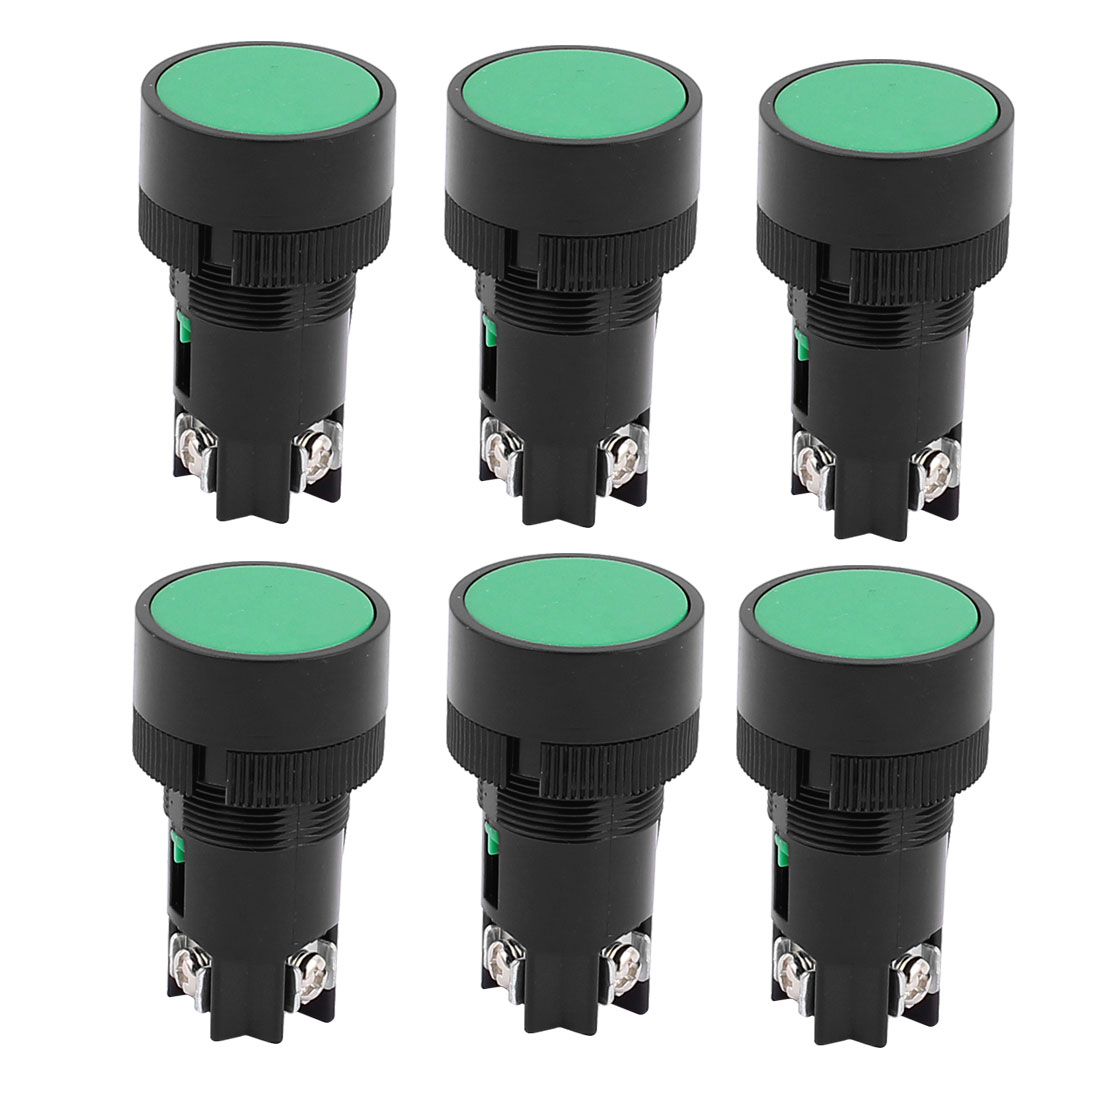 AC 220-250V 3A Panel Mounting 3 Terminal Green Push Button Switch 6PCS